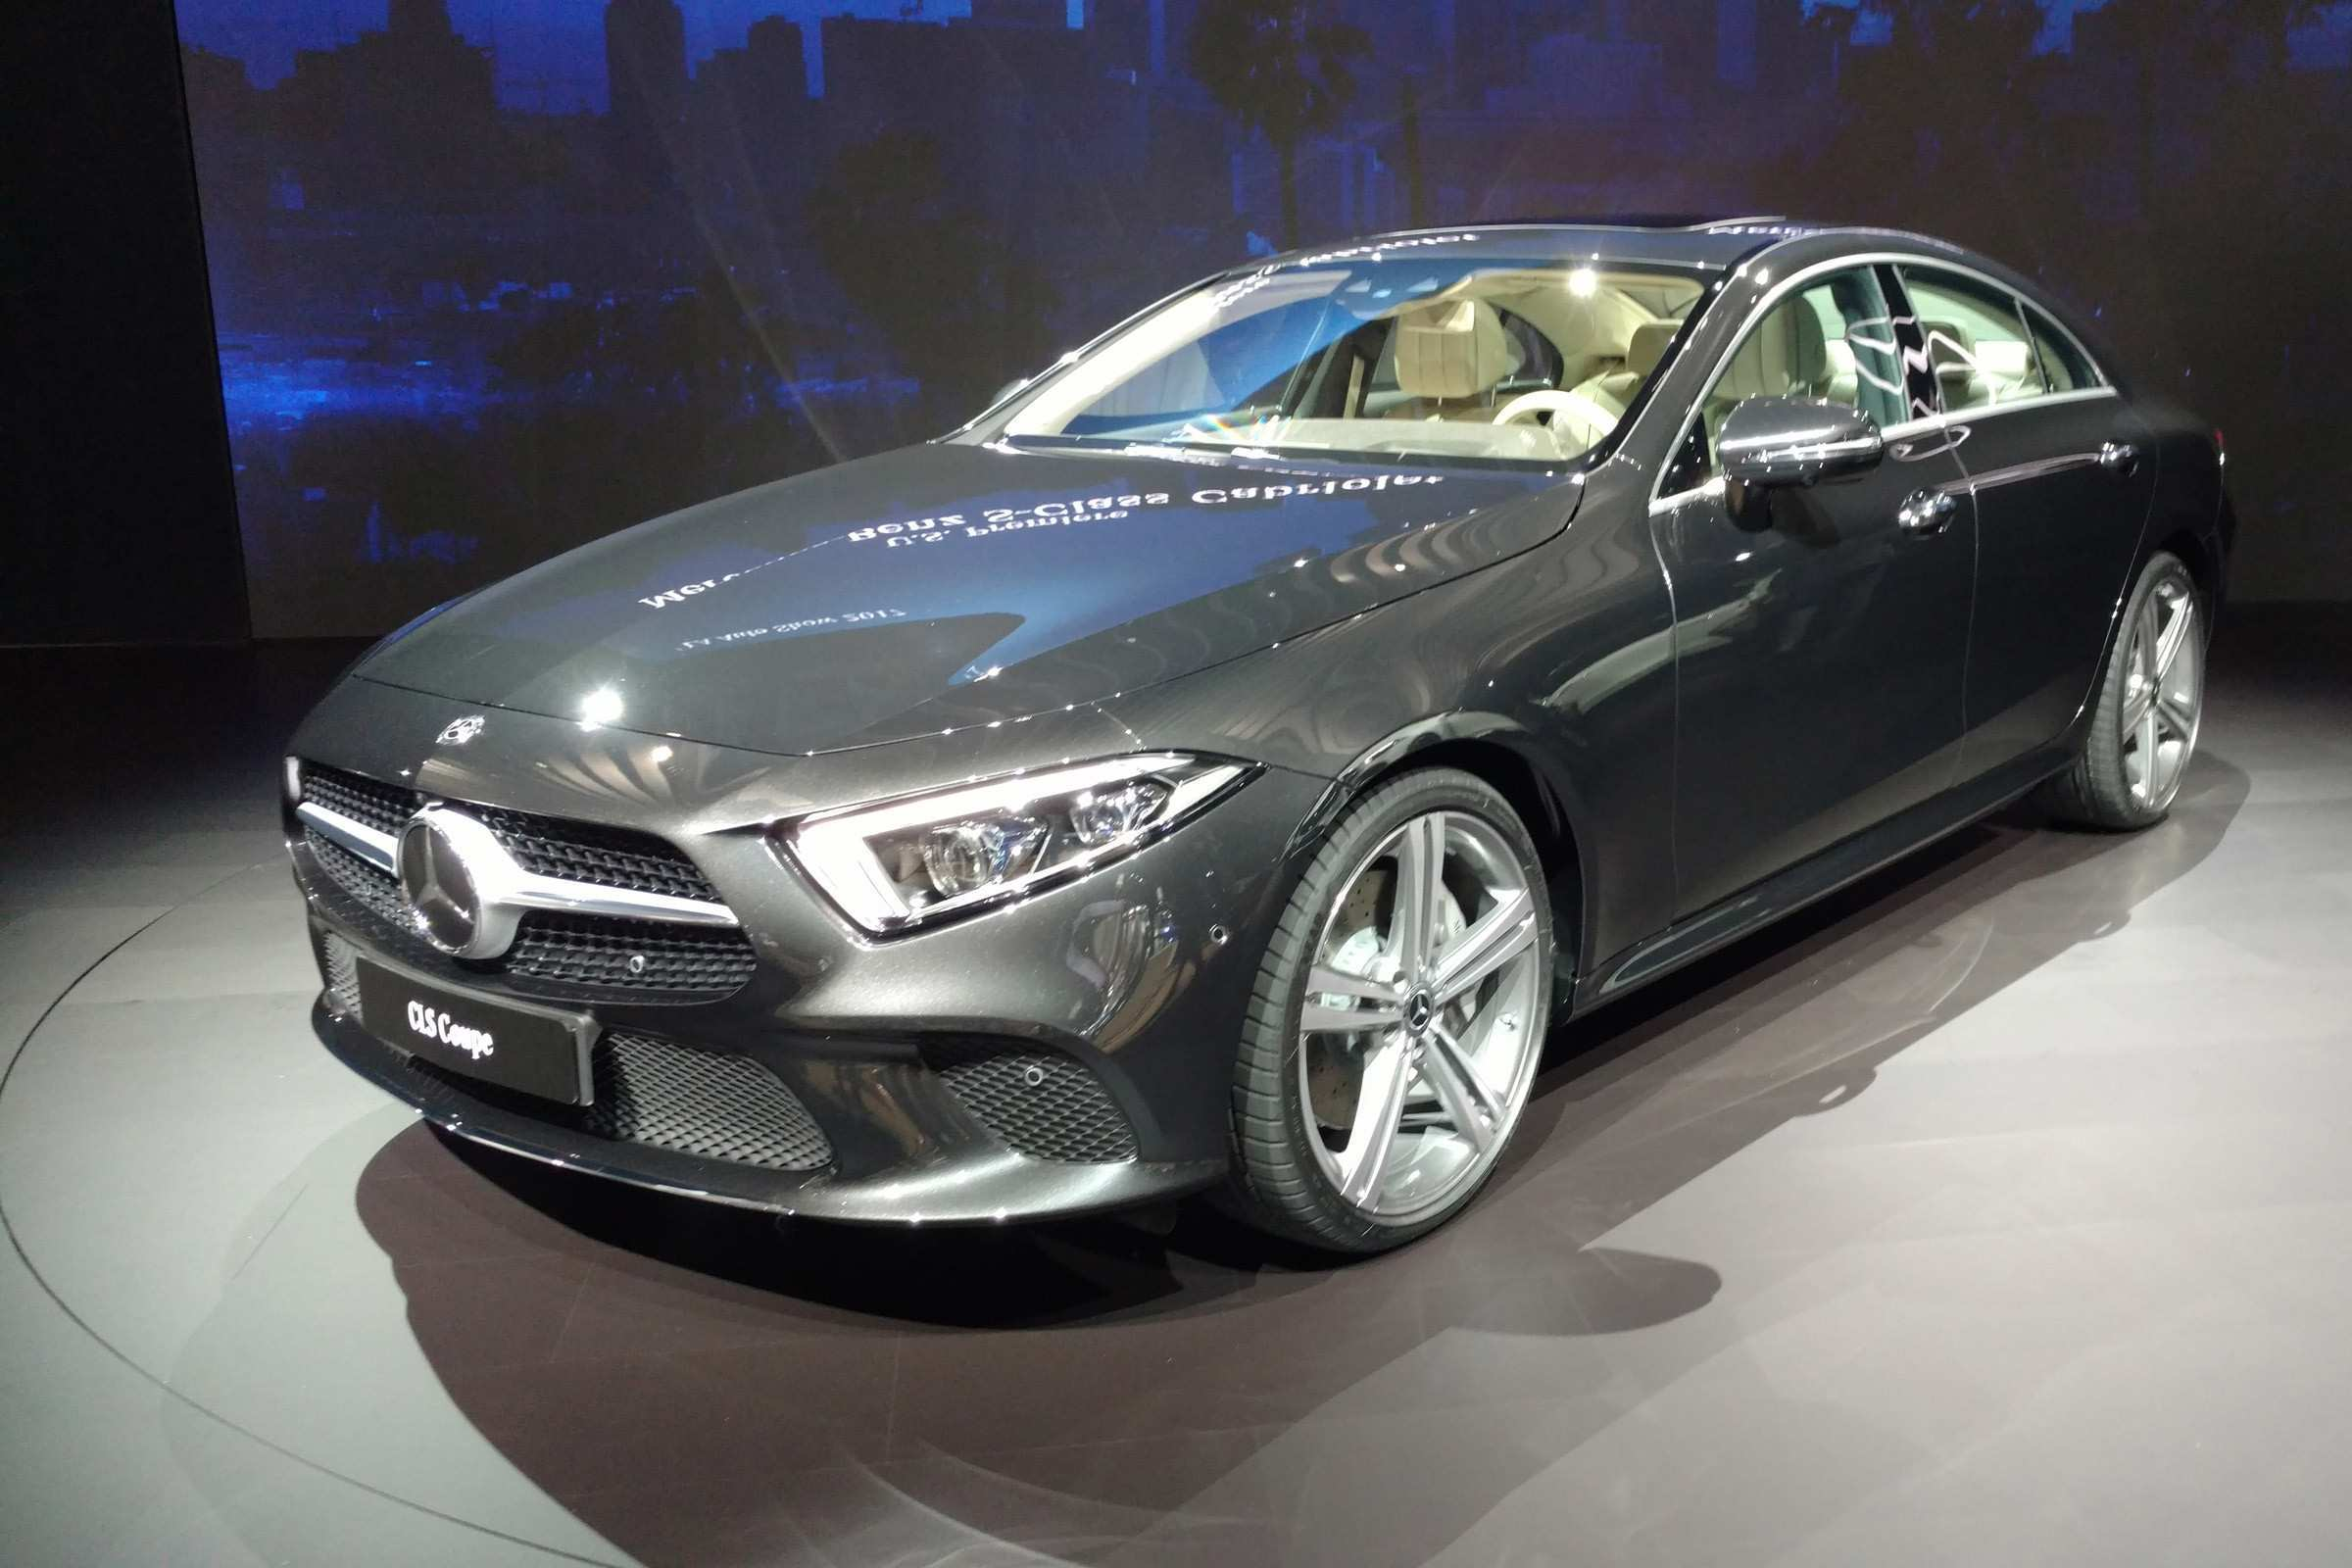 82 Best Review Mercedes Cls 2020 Exterior Redesign and Concept with Mercedes Cls 2020 Exterior